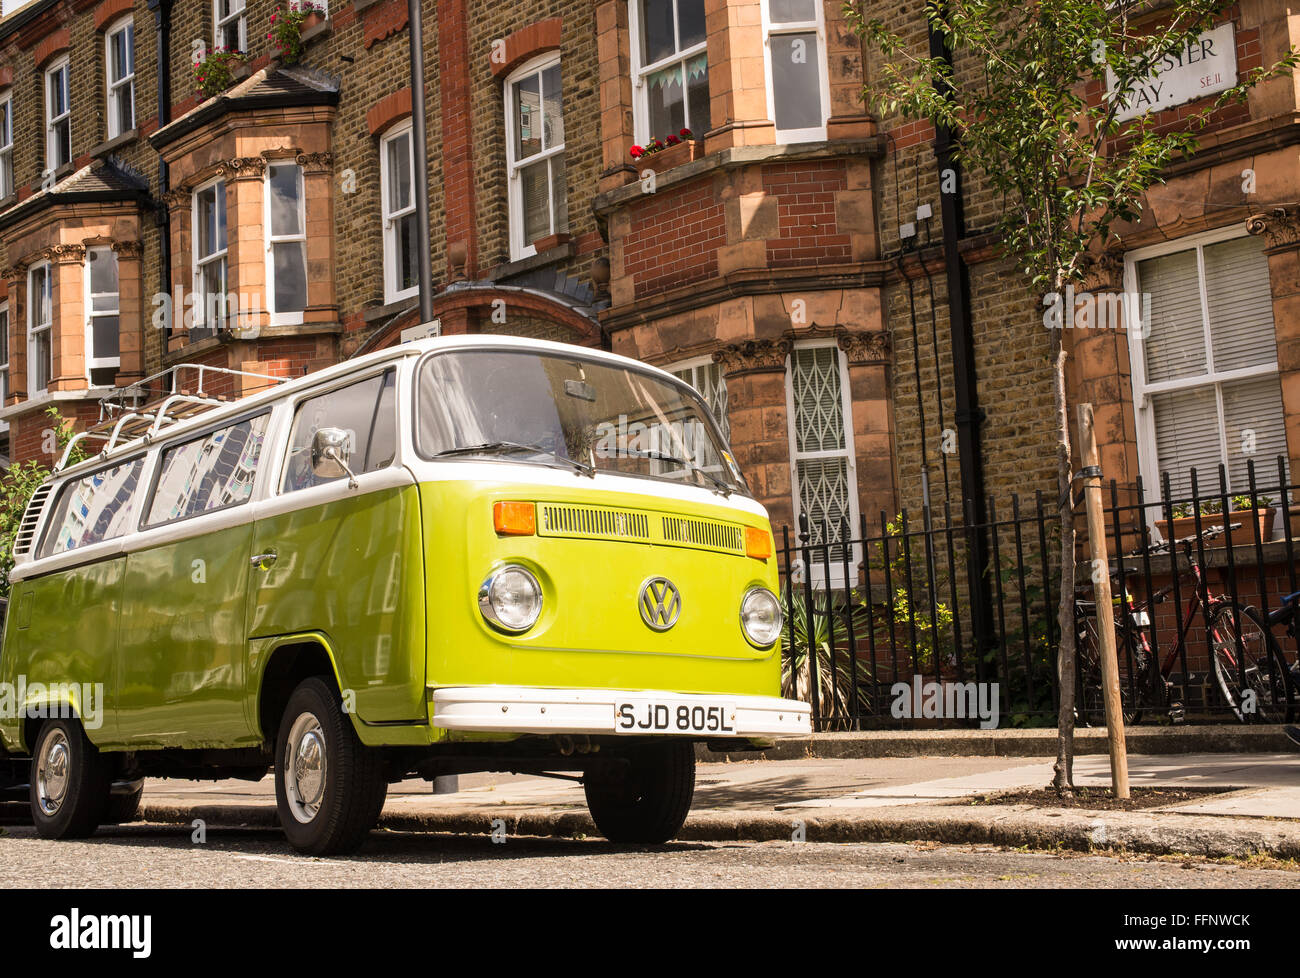 Old vintage green van parked in a street with Victorian houses in the background - Stock Image